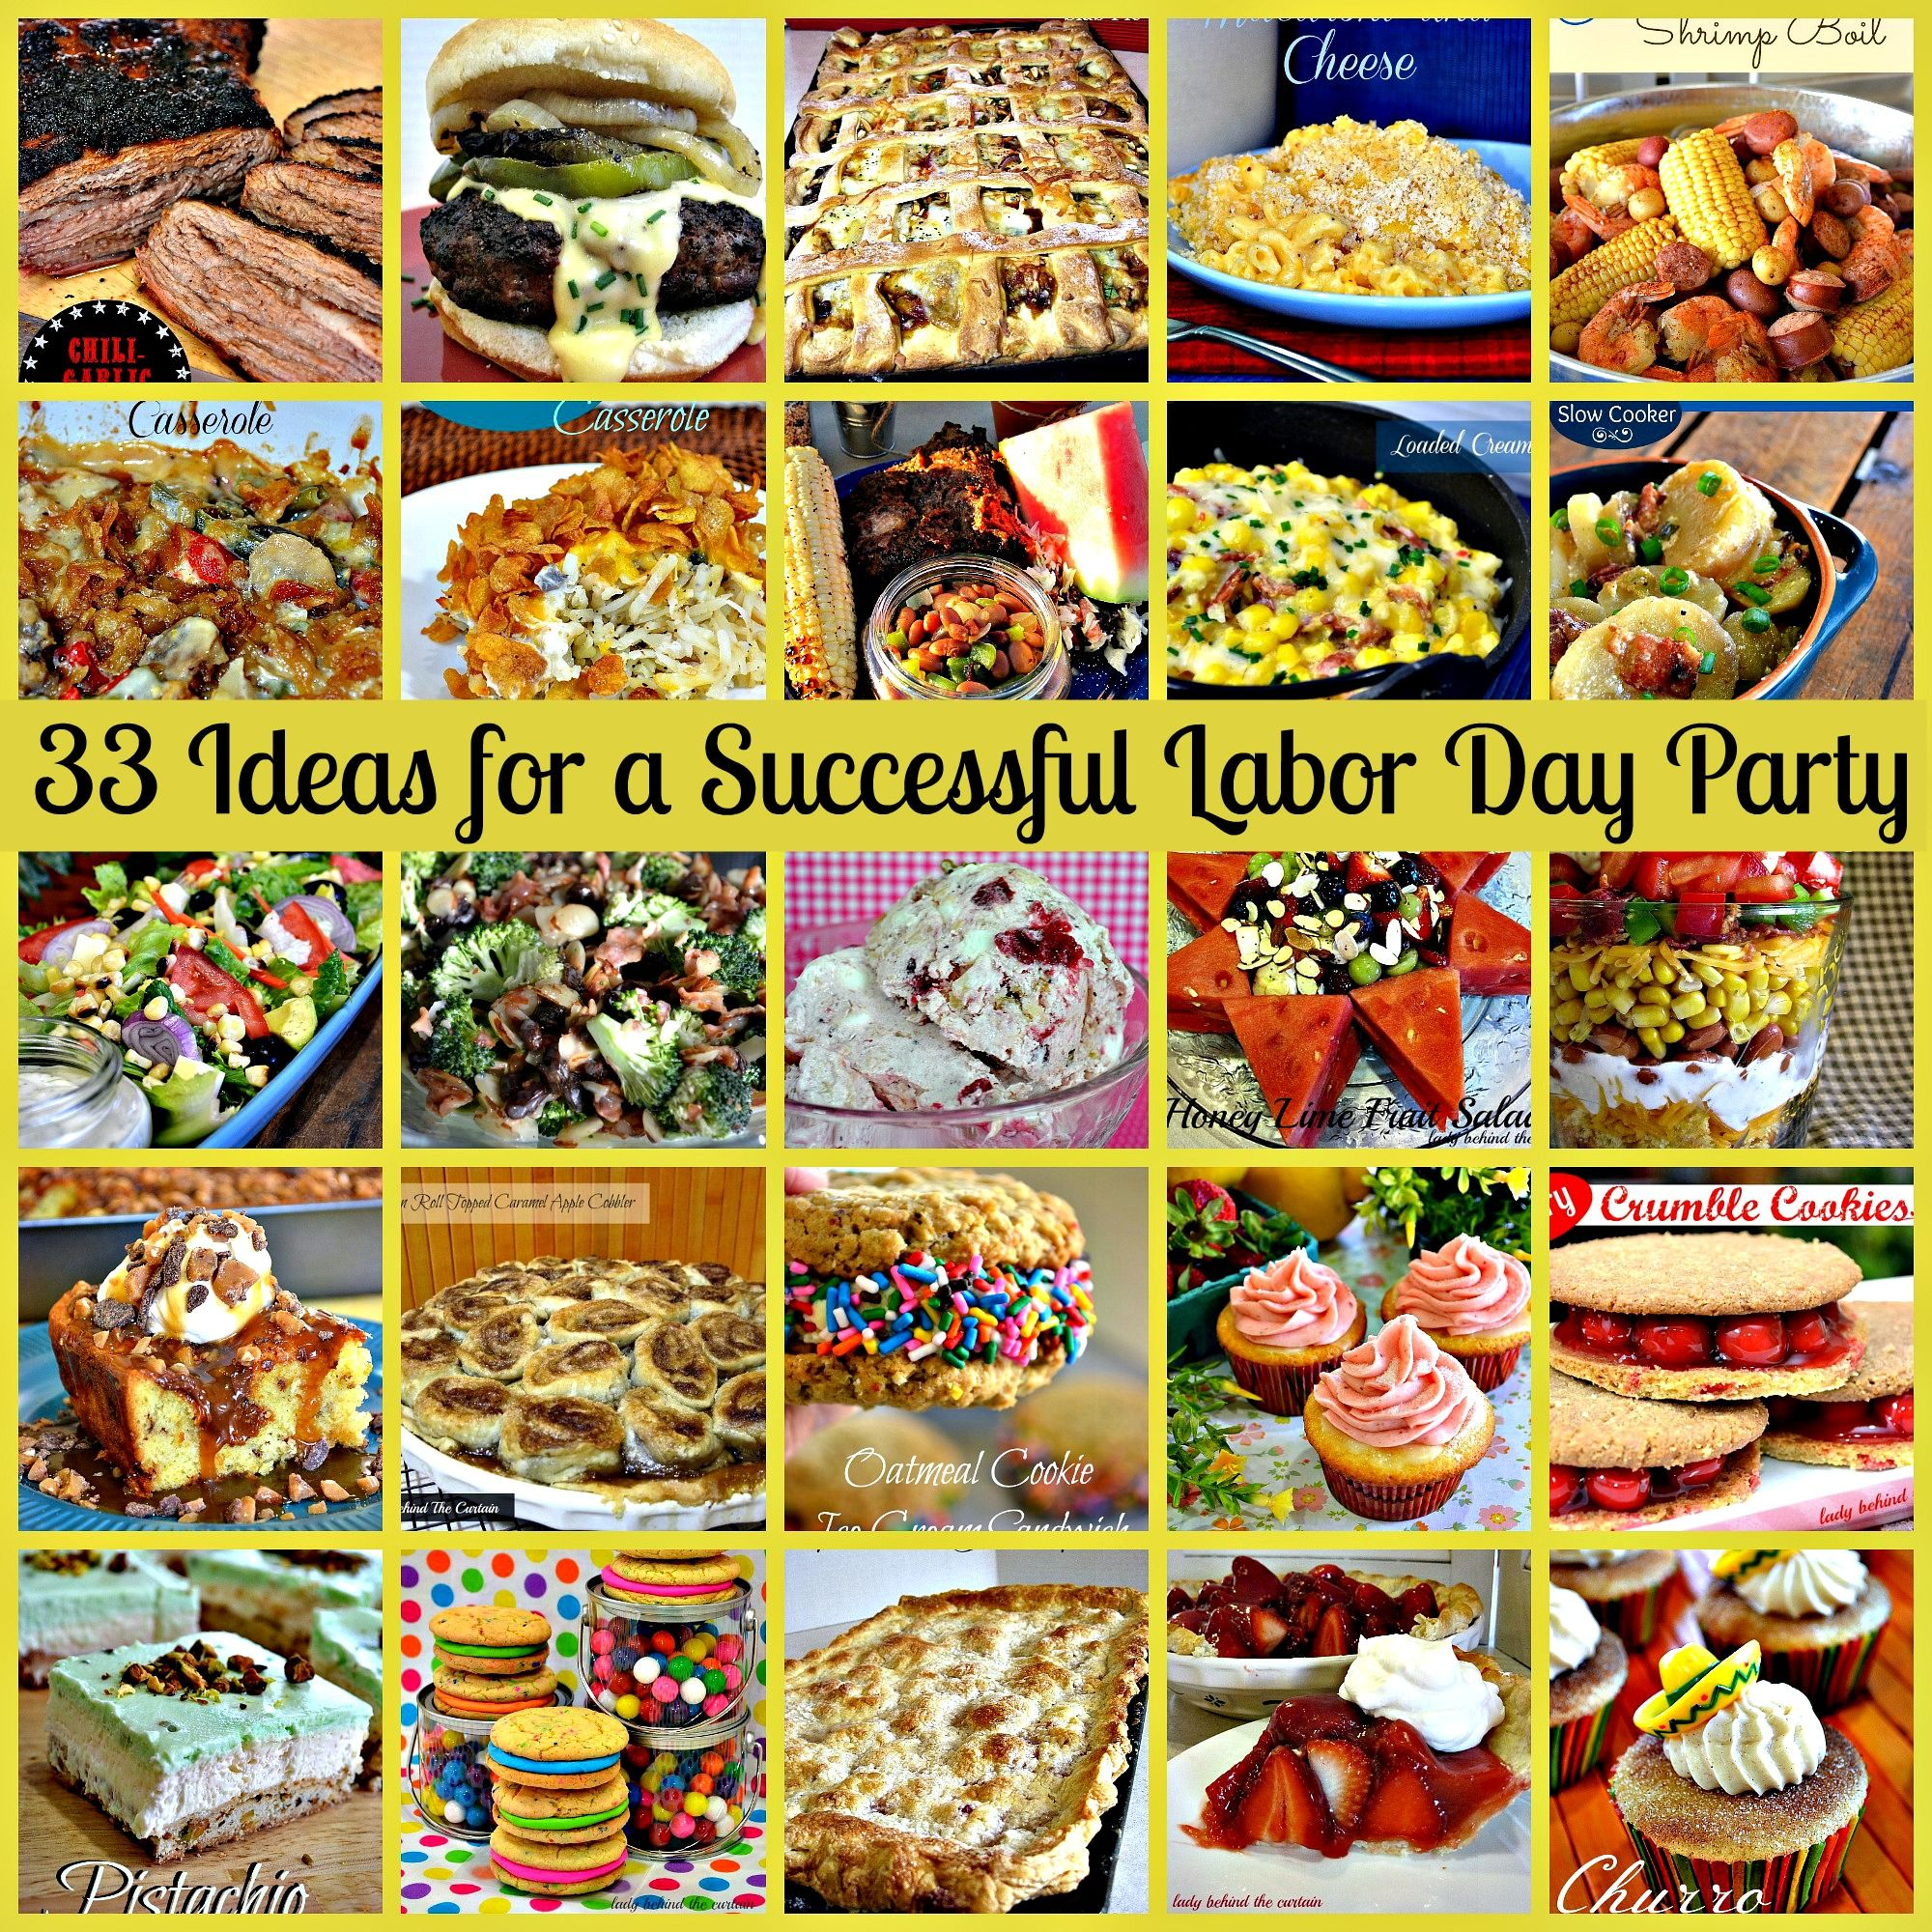 33 ideas for a successful labor day party | roundups from lbc